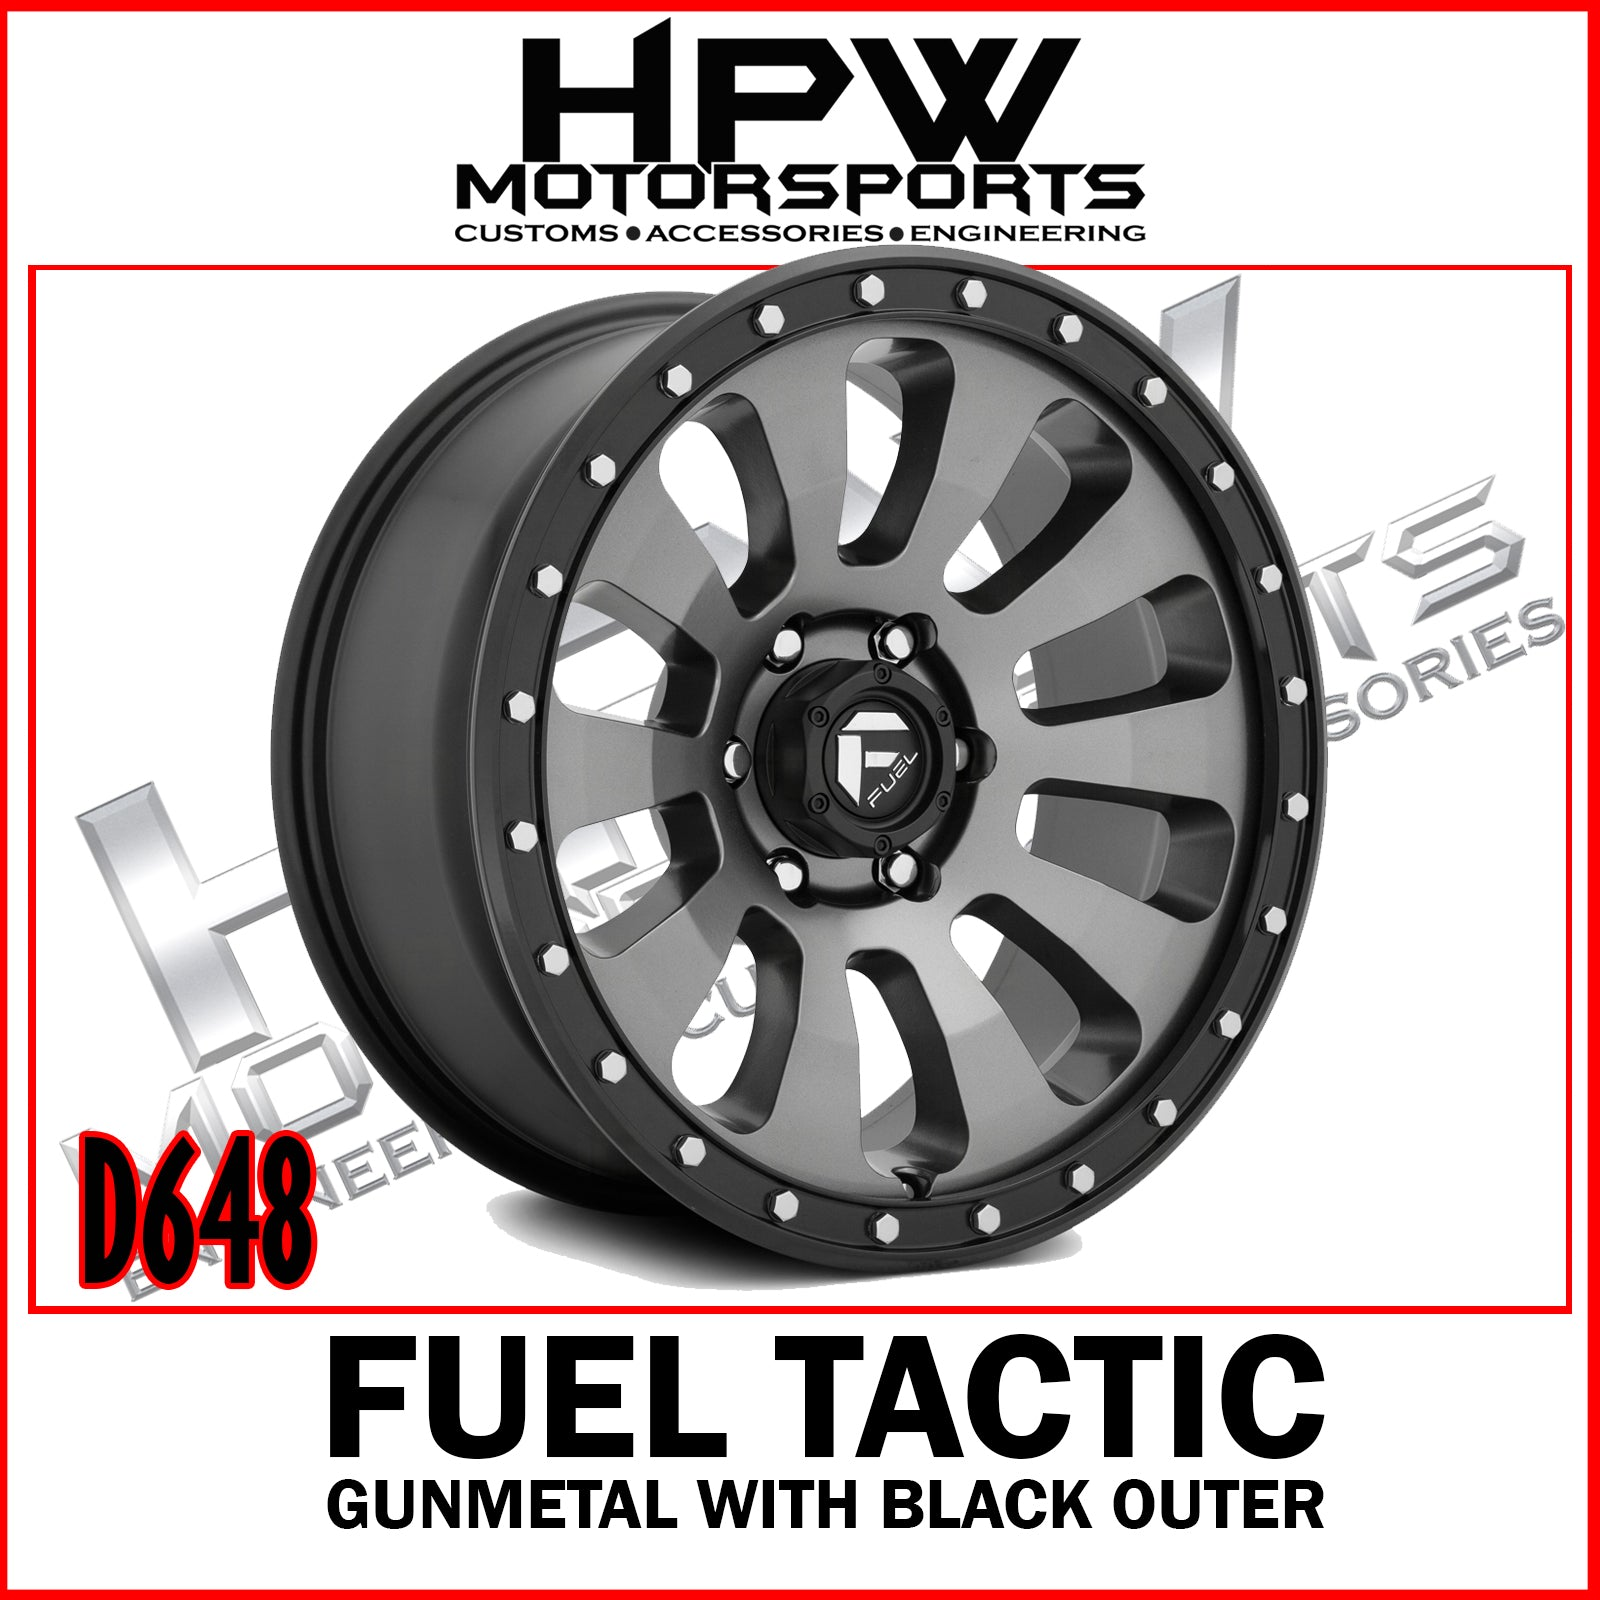 D648 FUEL TACTIC - GUNMETAL WITH BLACK OUTER - Set of 4